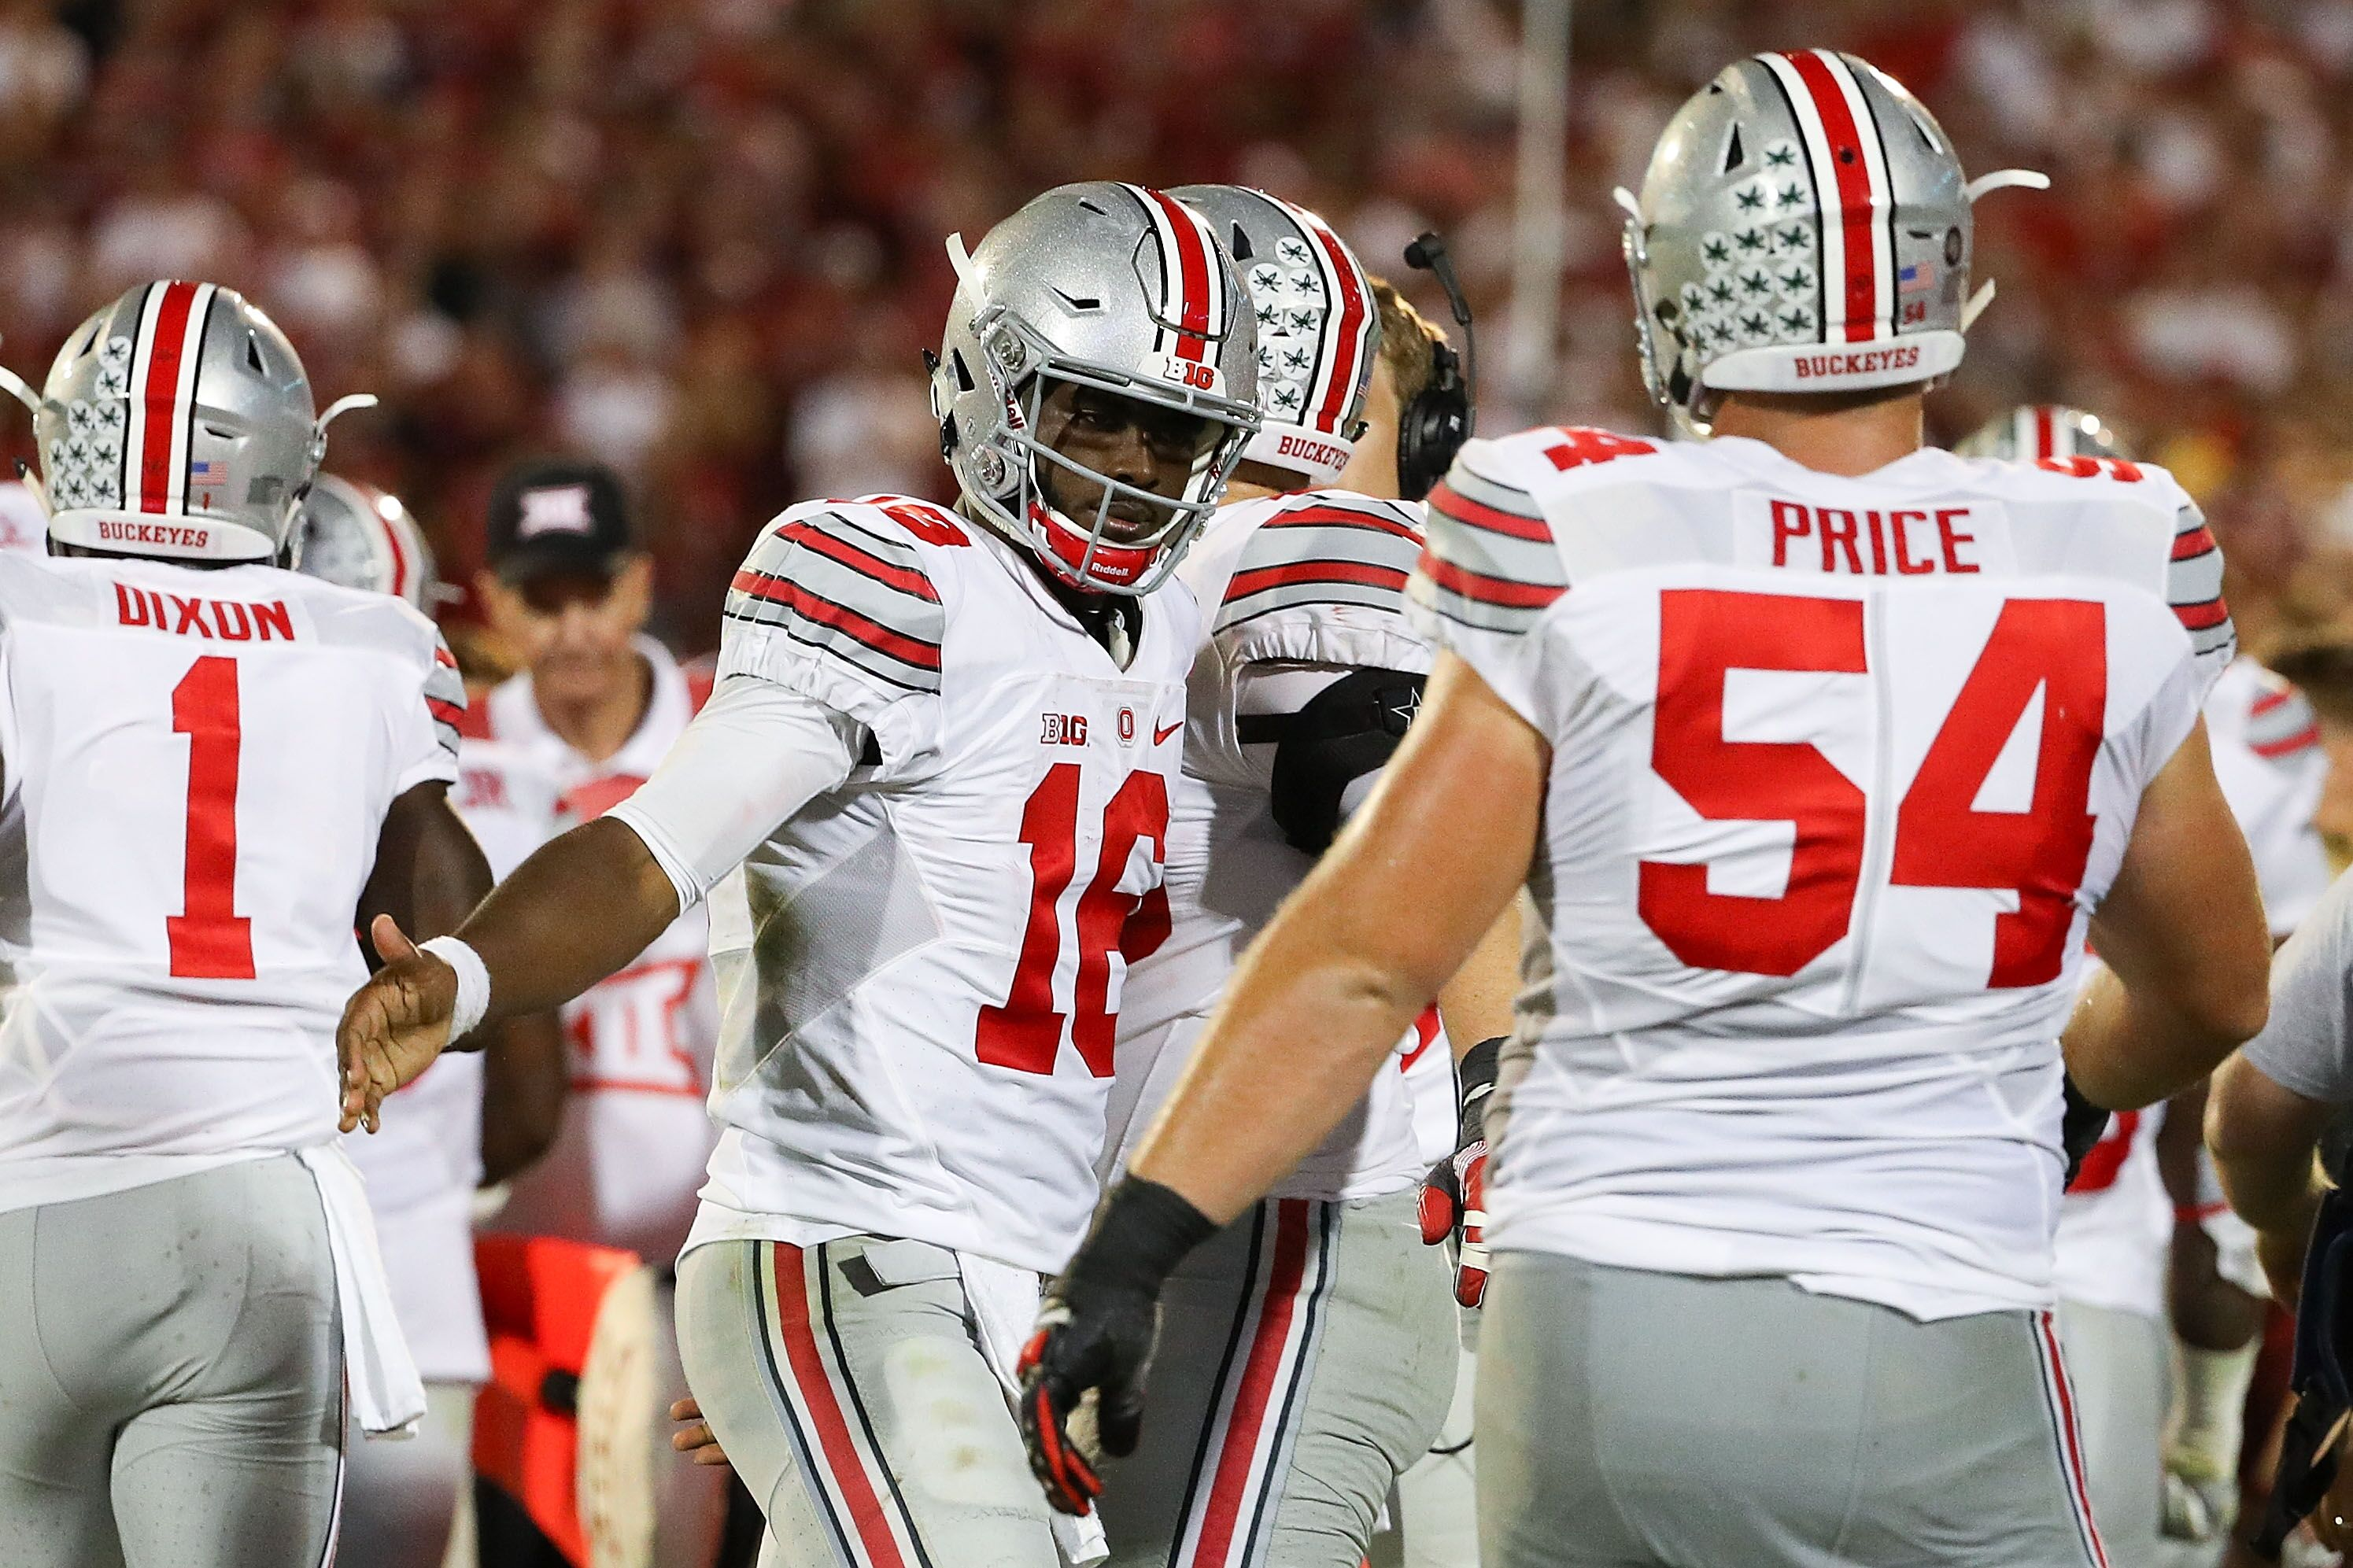 Ohio State Football: Off-Season Improvements in Spotlight Against Indiana